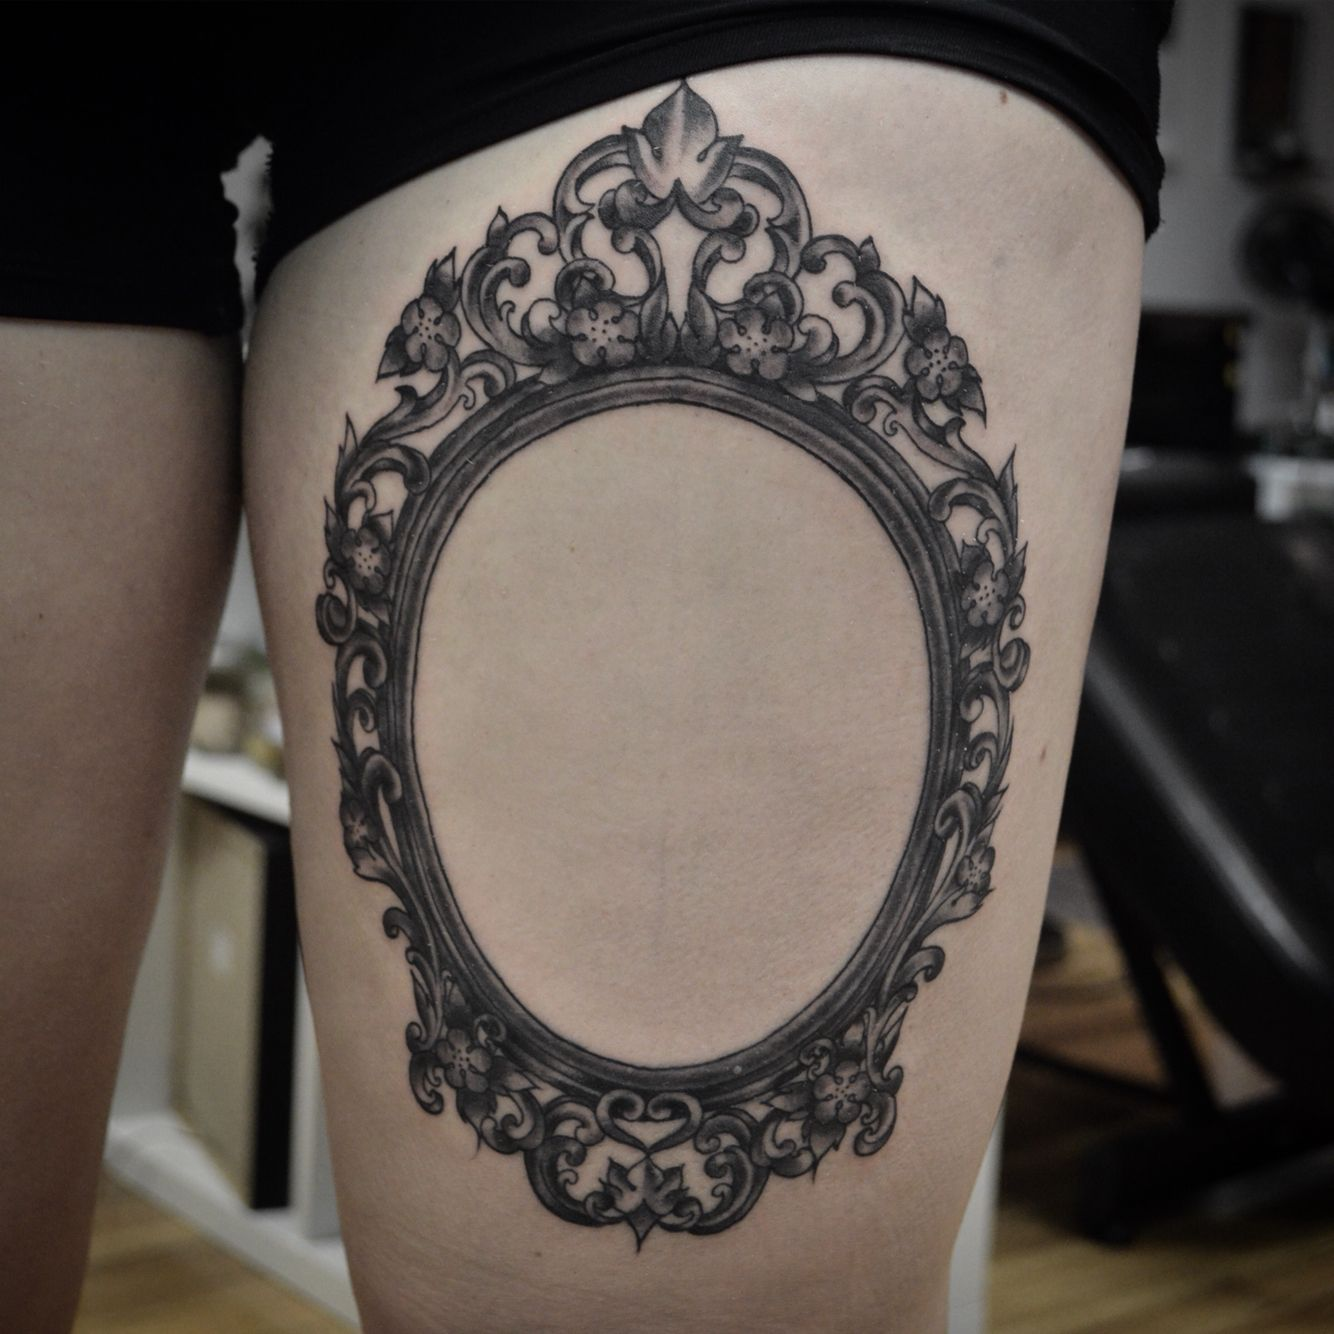 filigree frame tattoo by susie humphrey at pittsburgh tattoo company tattoos by susie humphrey. Black Bedroom Furniture Sets. Home Design Ideas